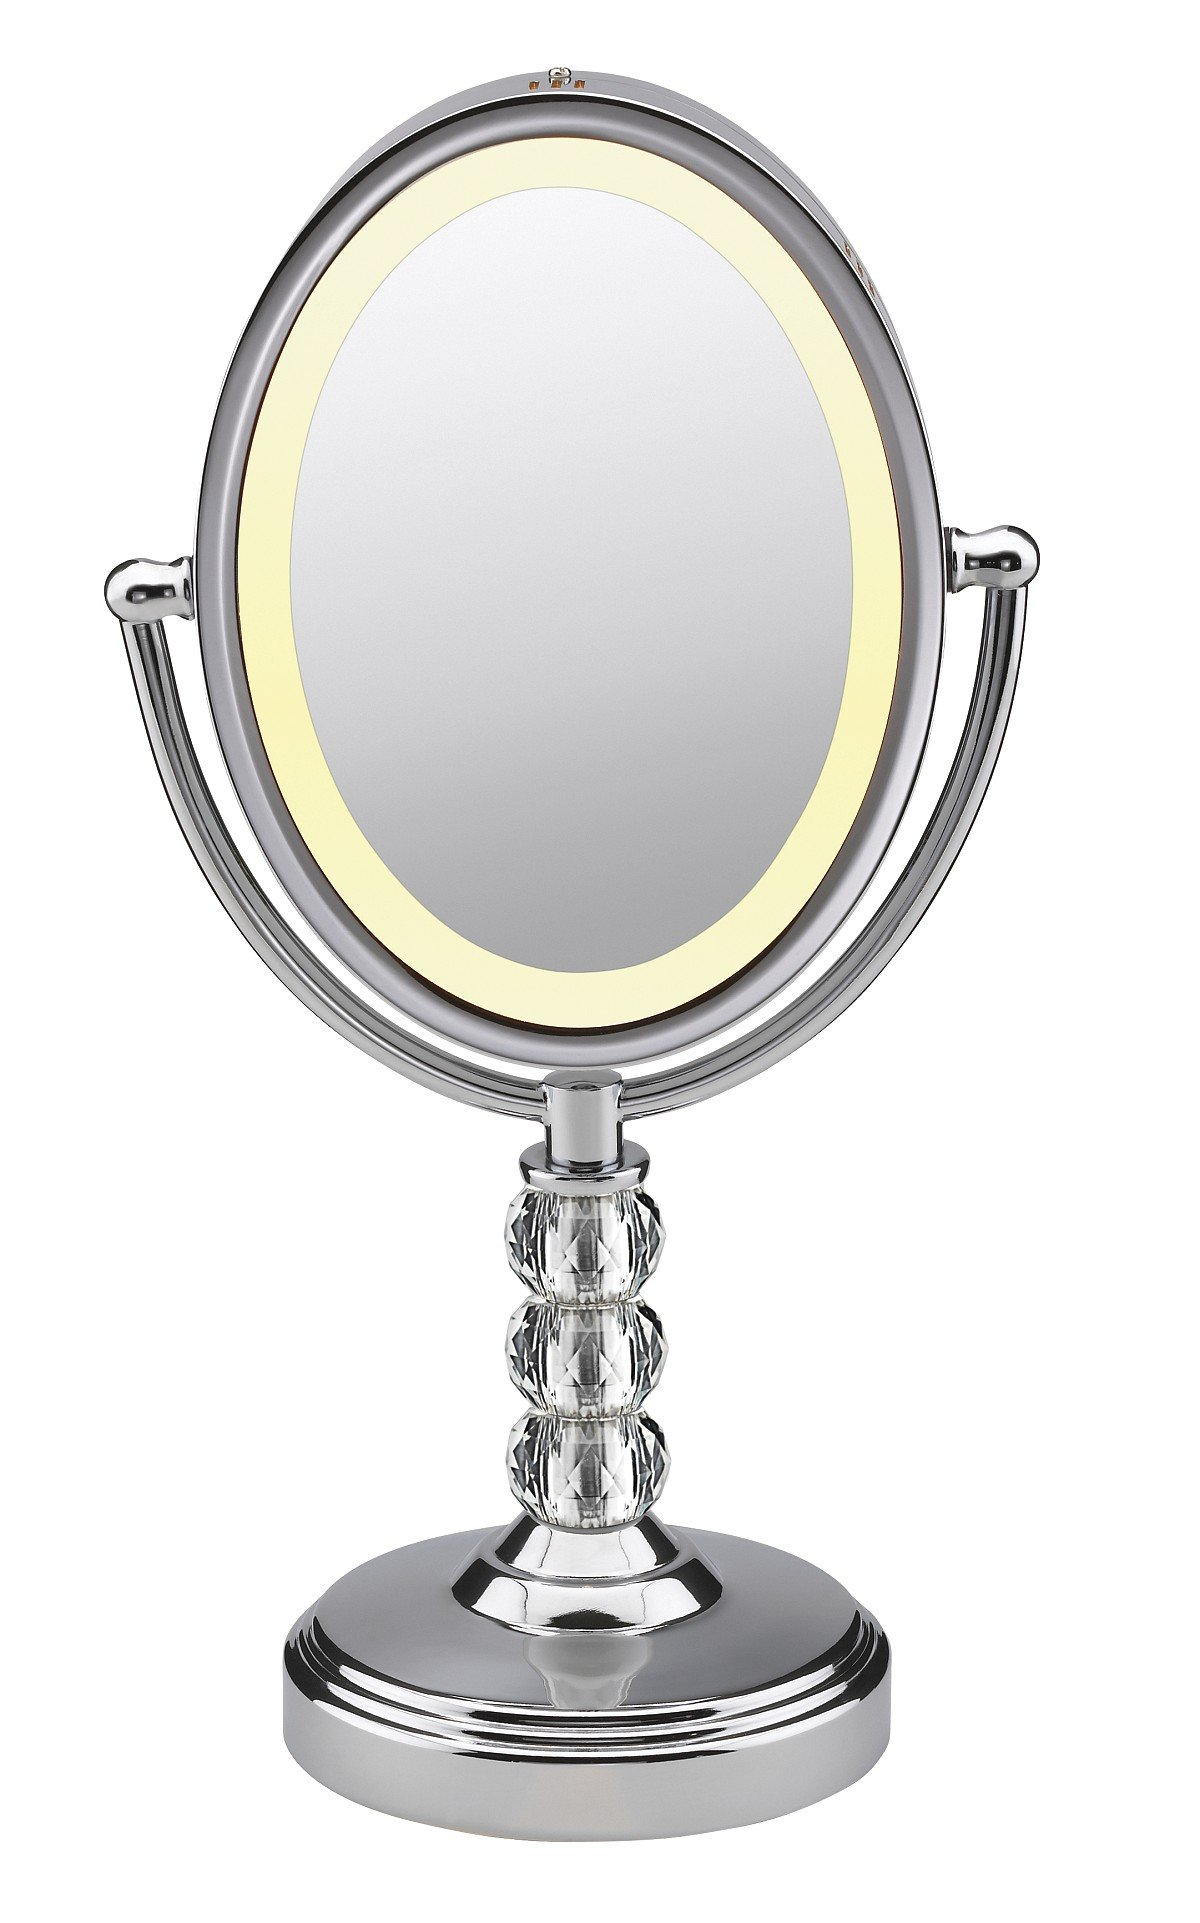 Conair Oval Shaped Double-Sided Lighted Makeup Mirror; 1x/7x magnification; Polished Chrome w/ Crystal Ball Stem